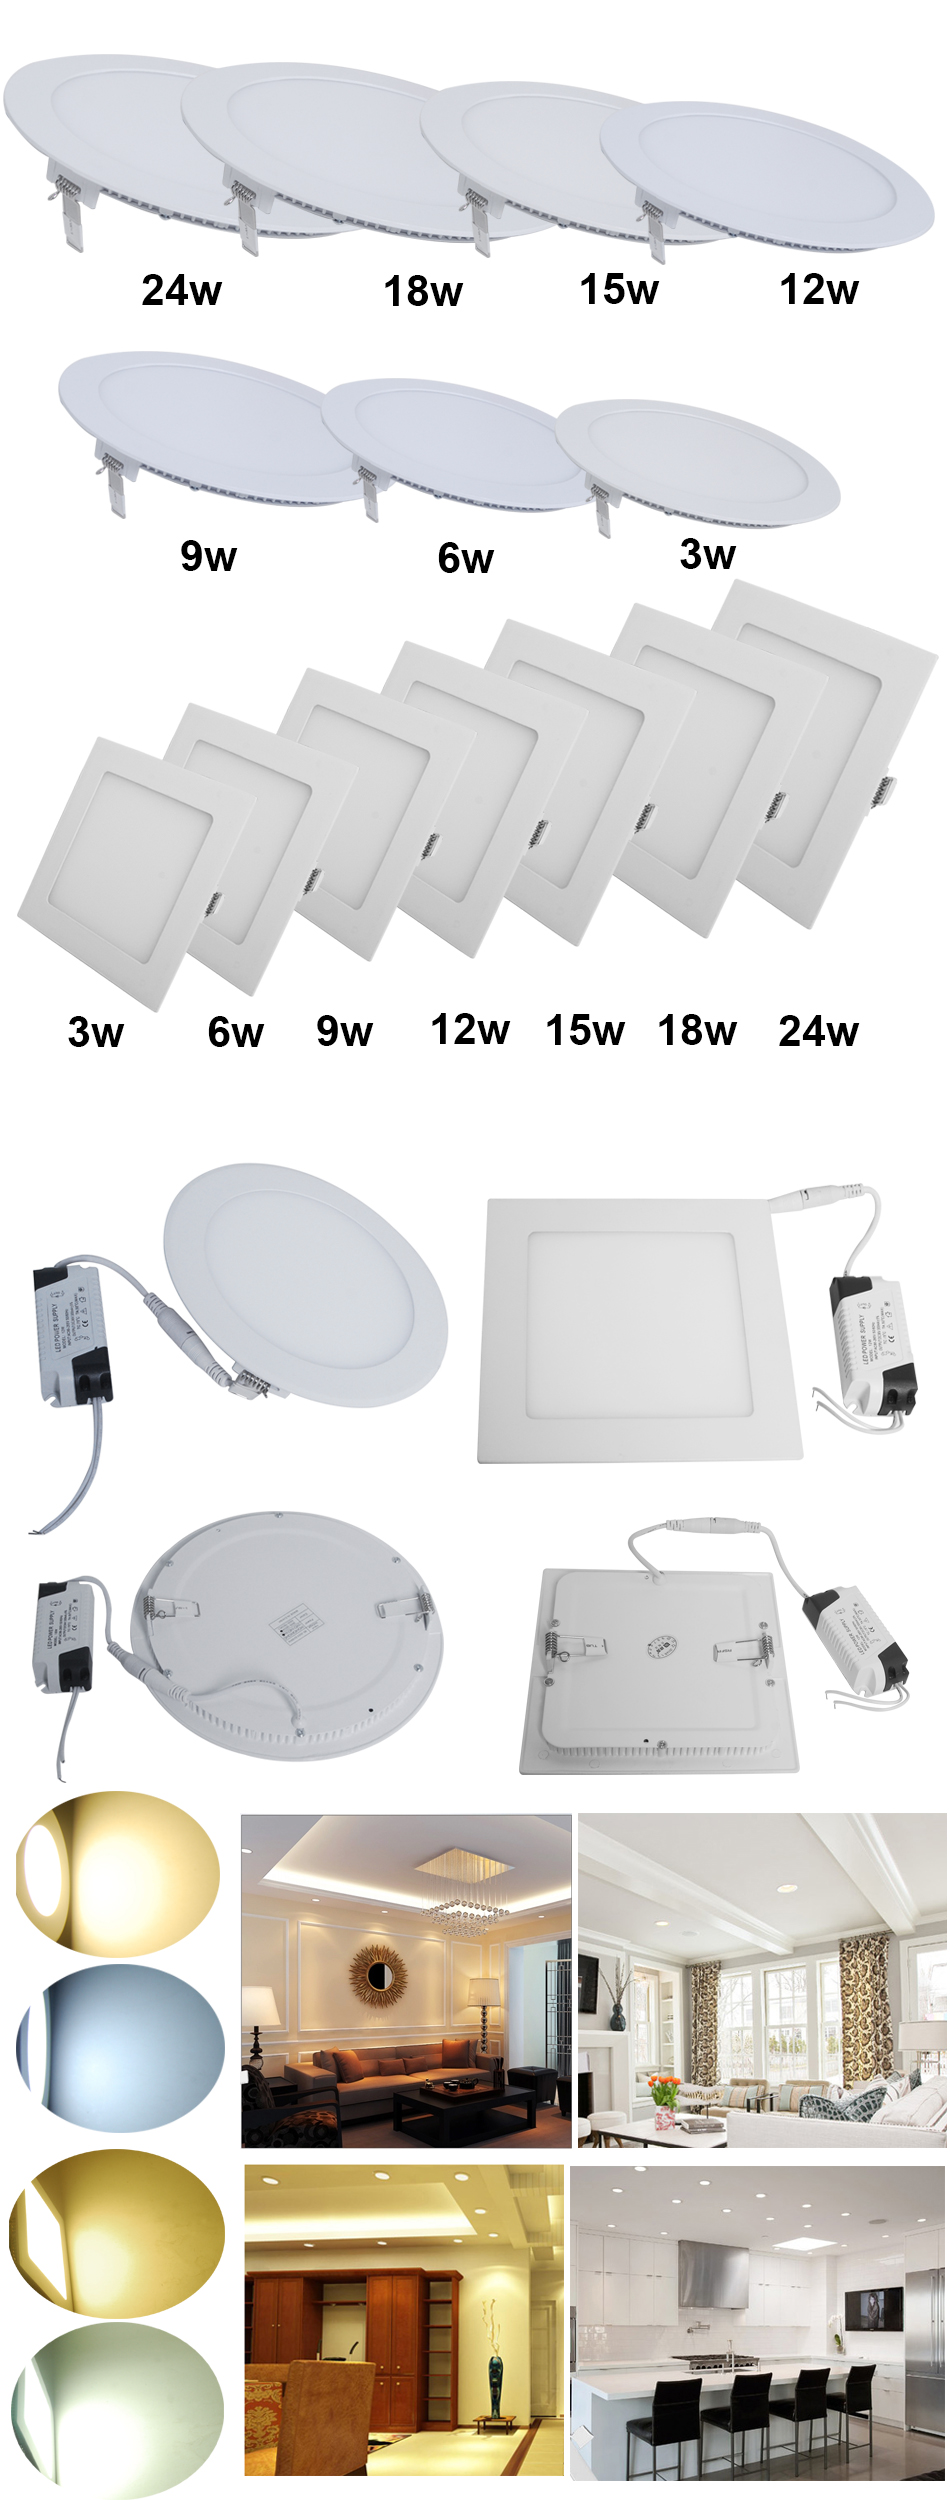 Please Note That Our Lamps Will Not Work With Touch Or Remote Control  Dimmers U2013 This Includes Touch Lamps.